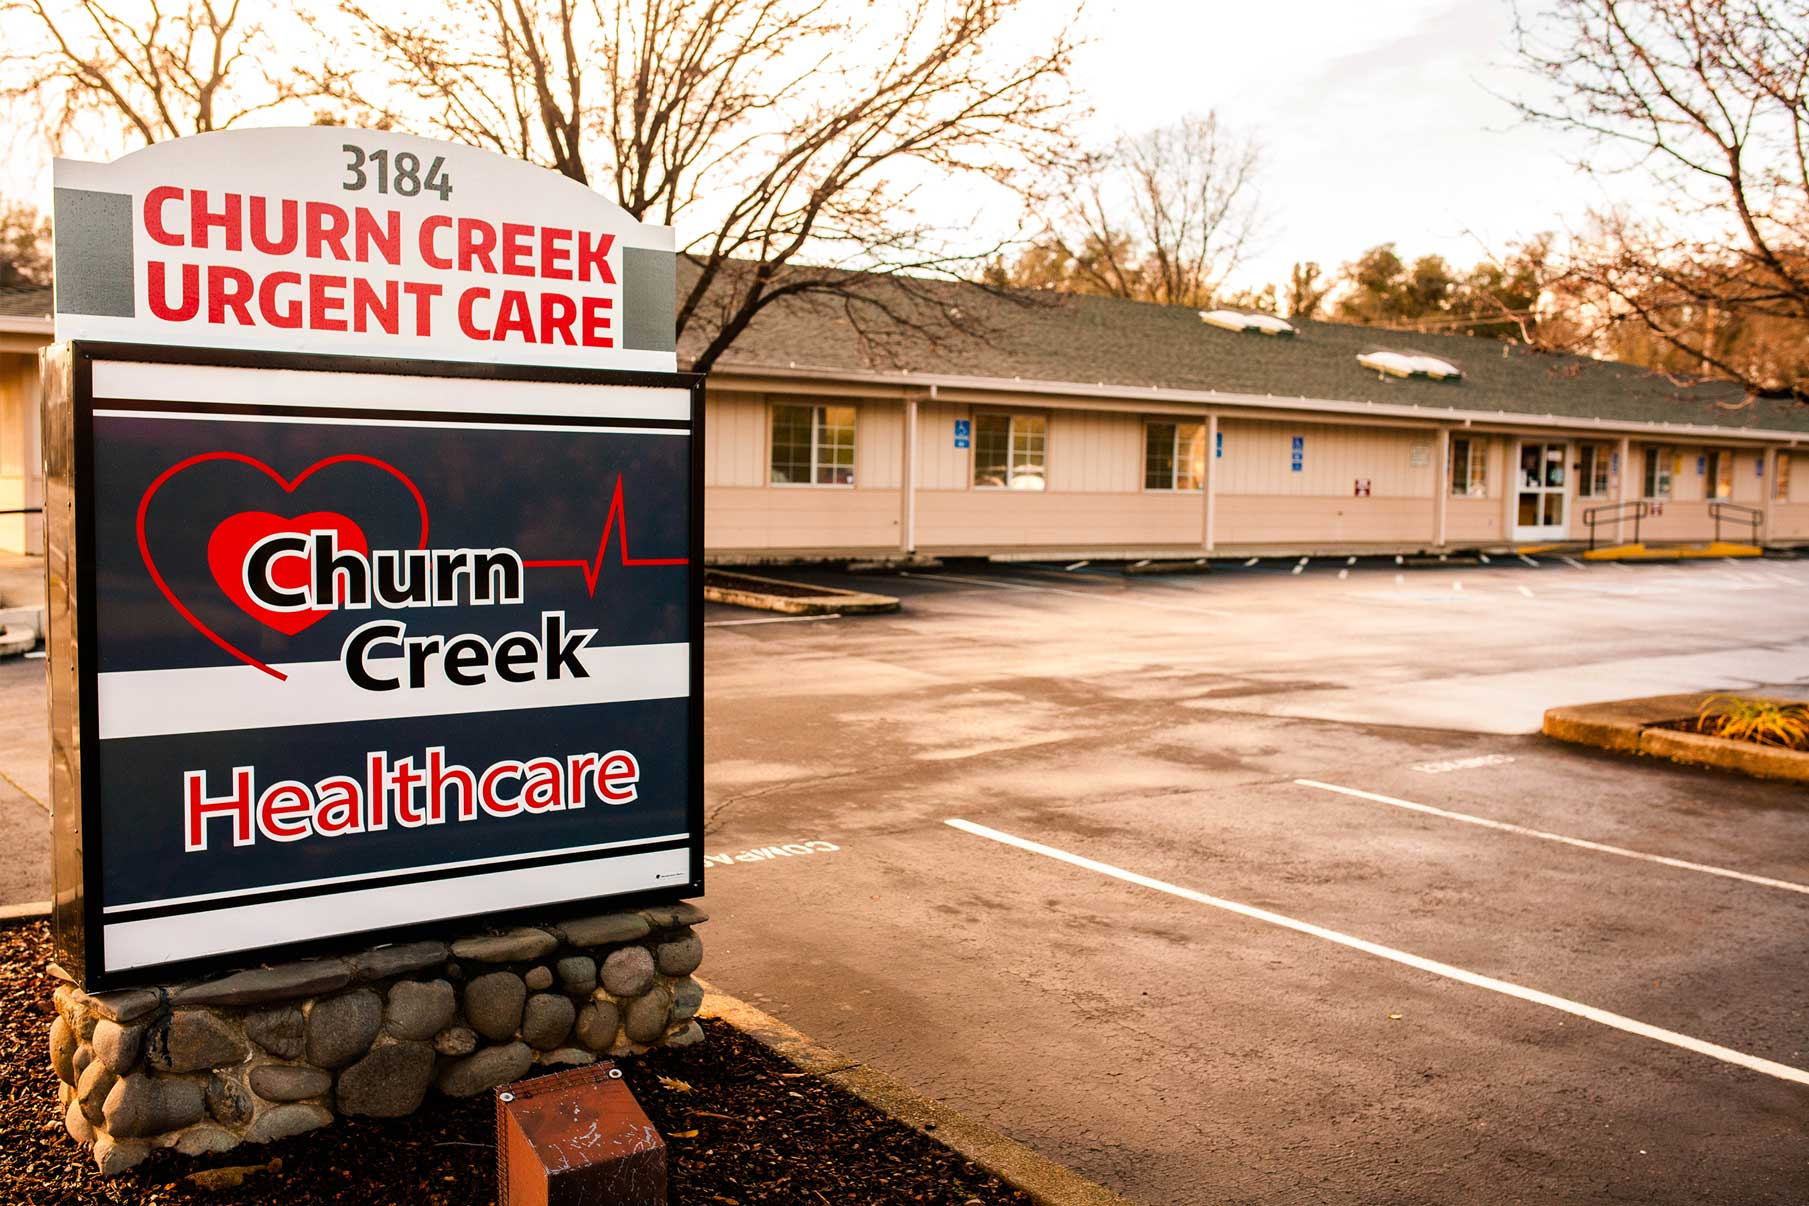 Churn Creek Healthcare